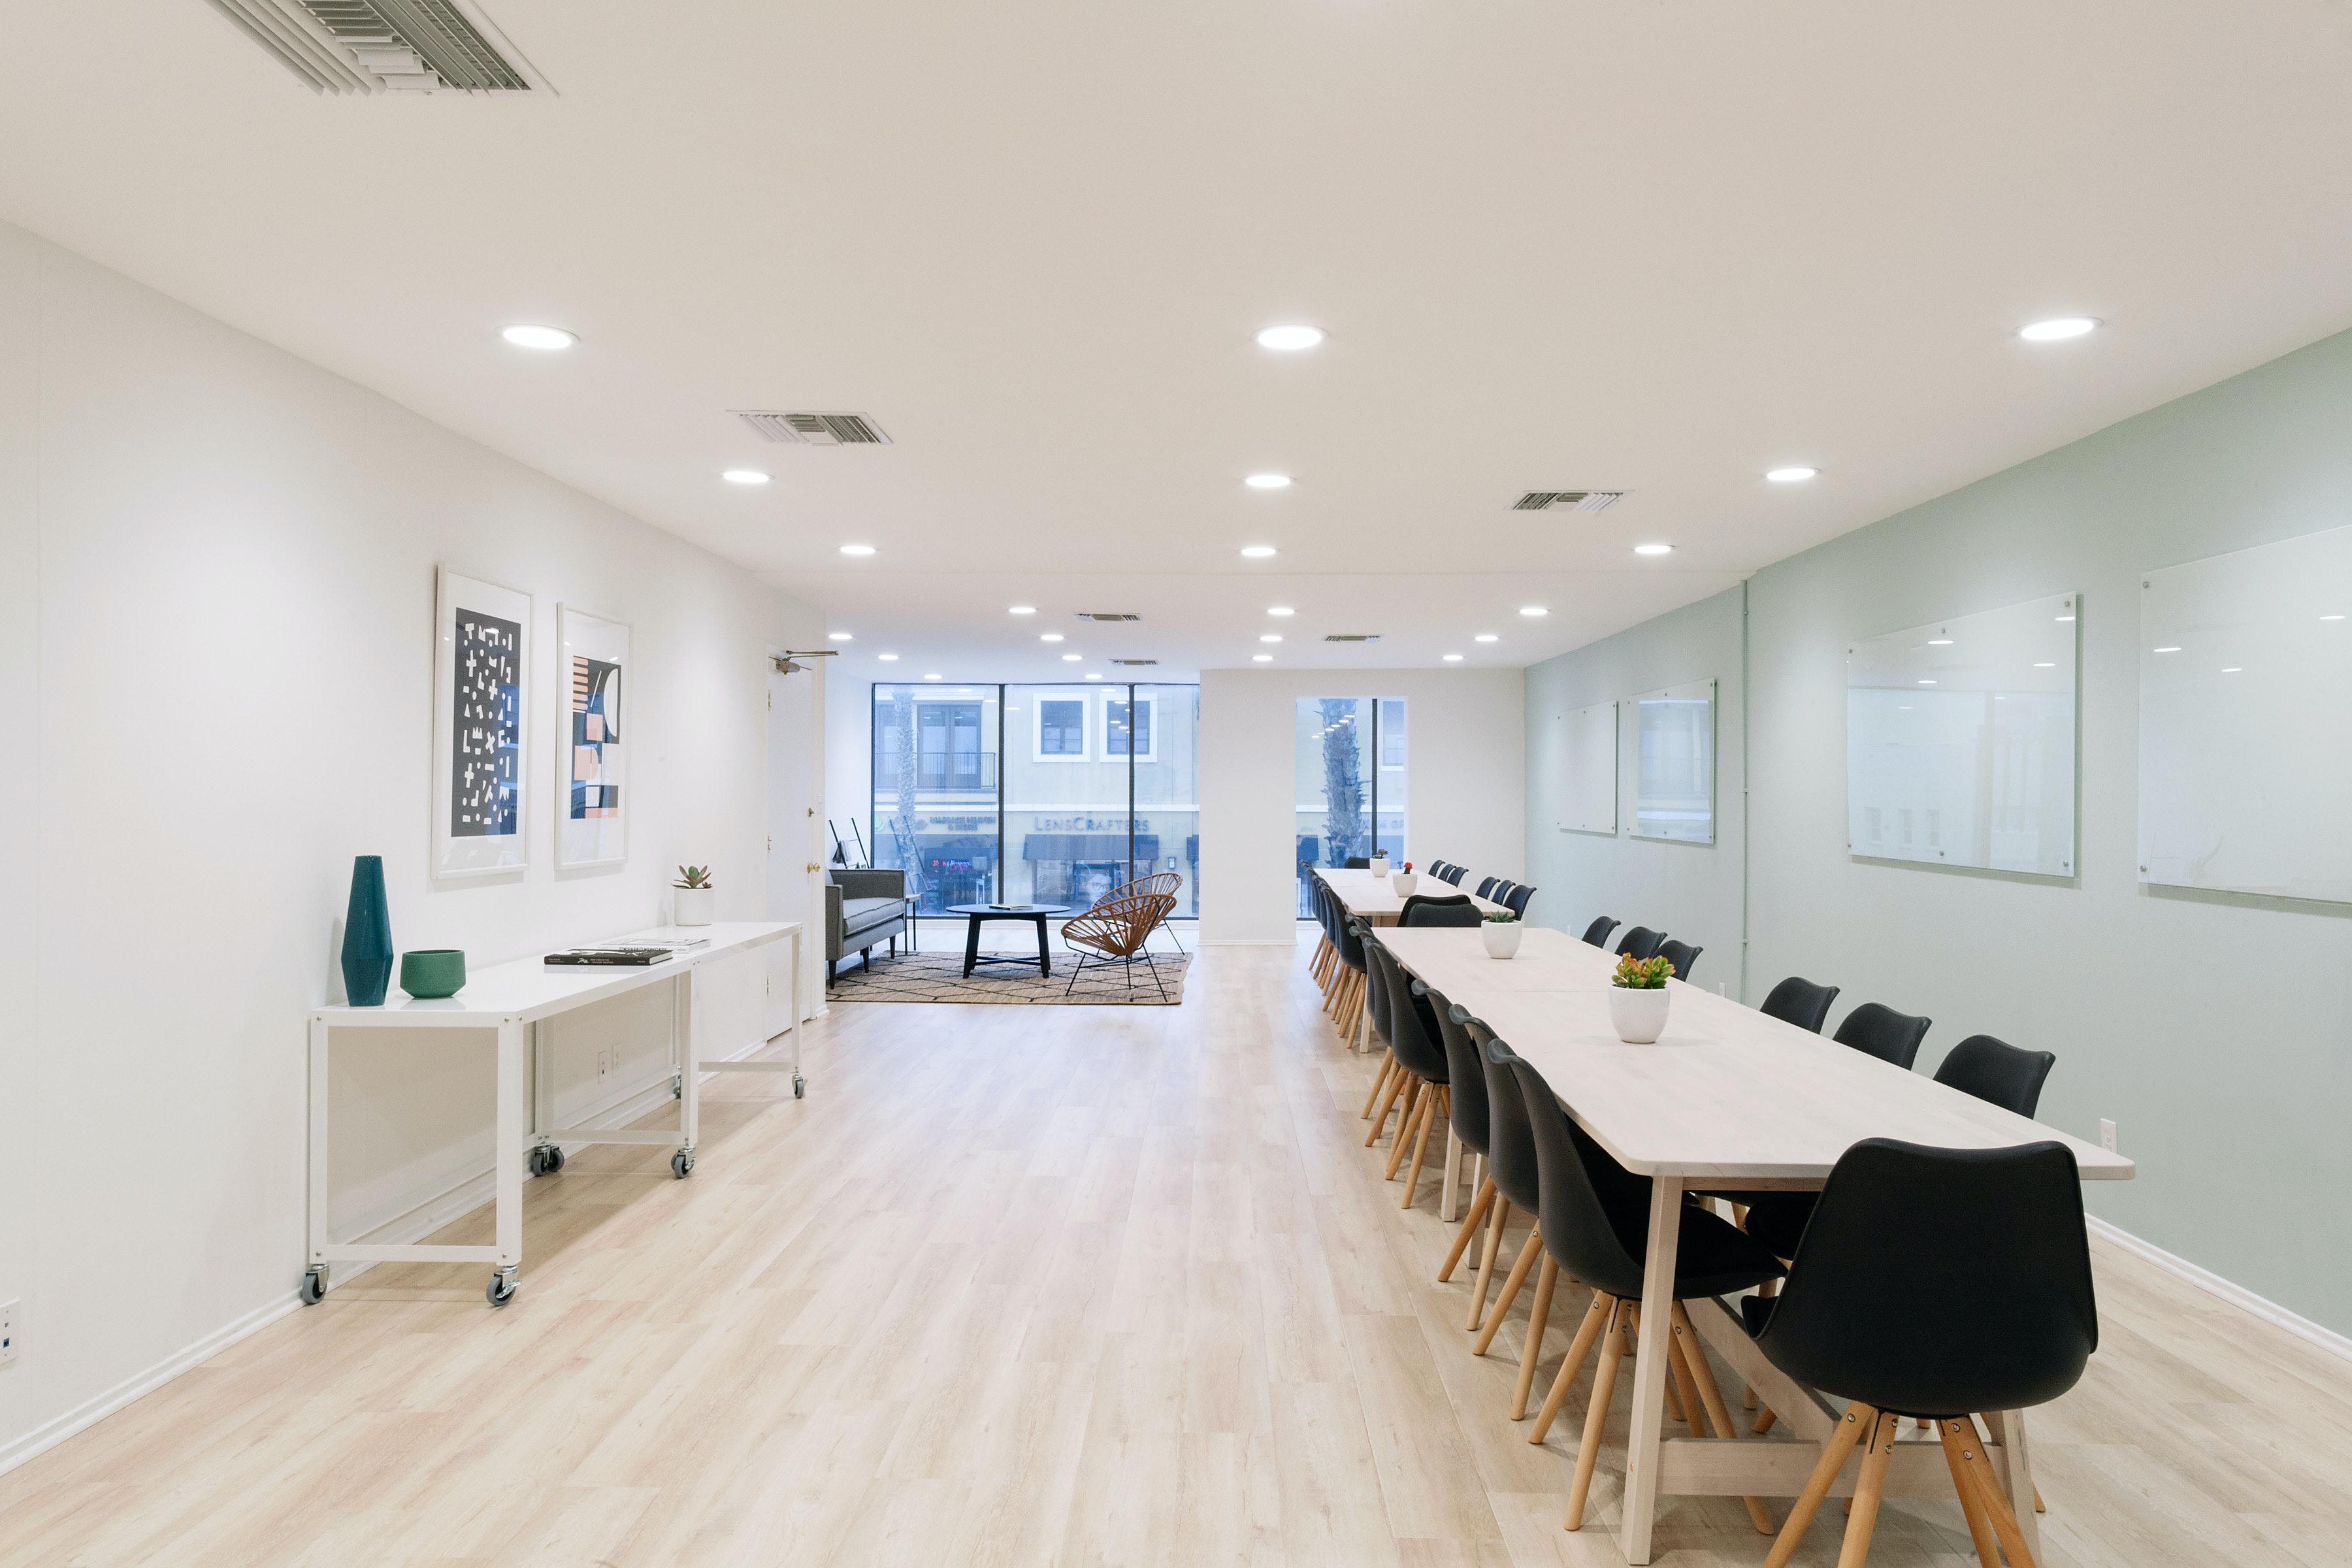 creative-meeting space at 320 Wilshire Blvd ,Los Angeles